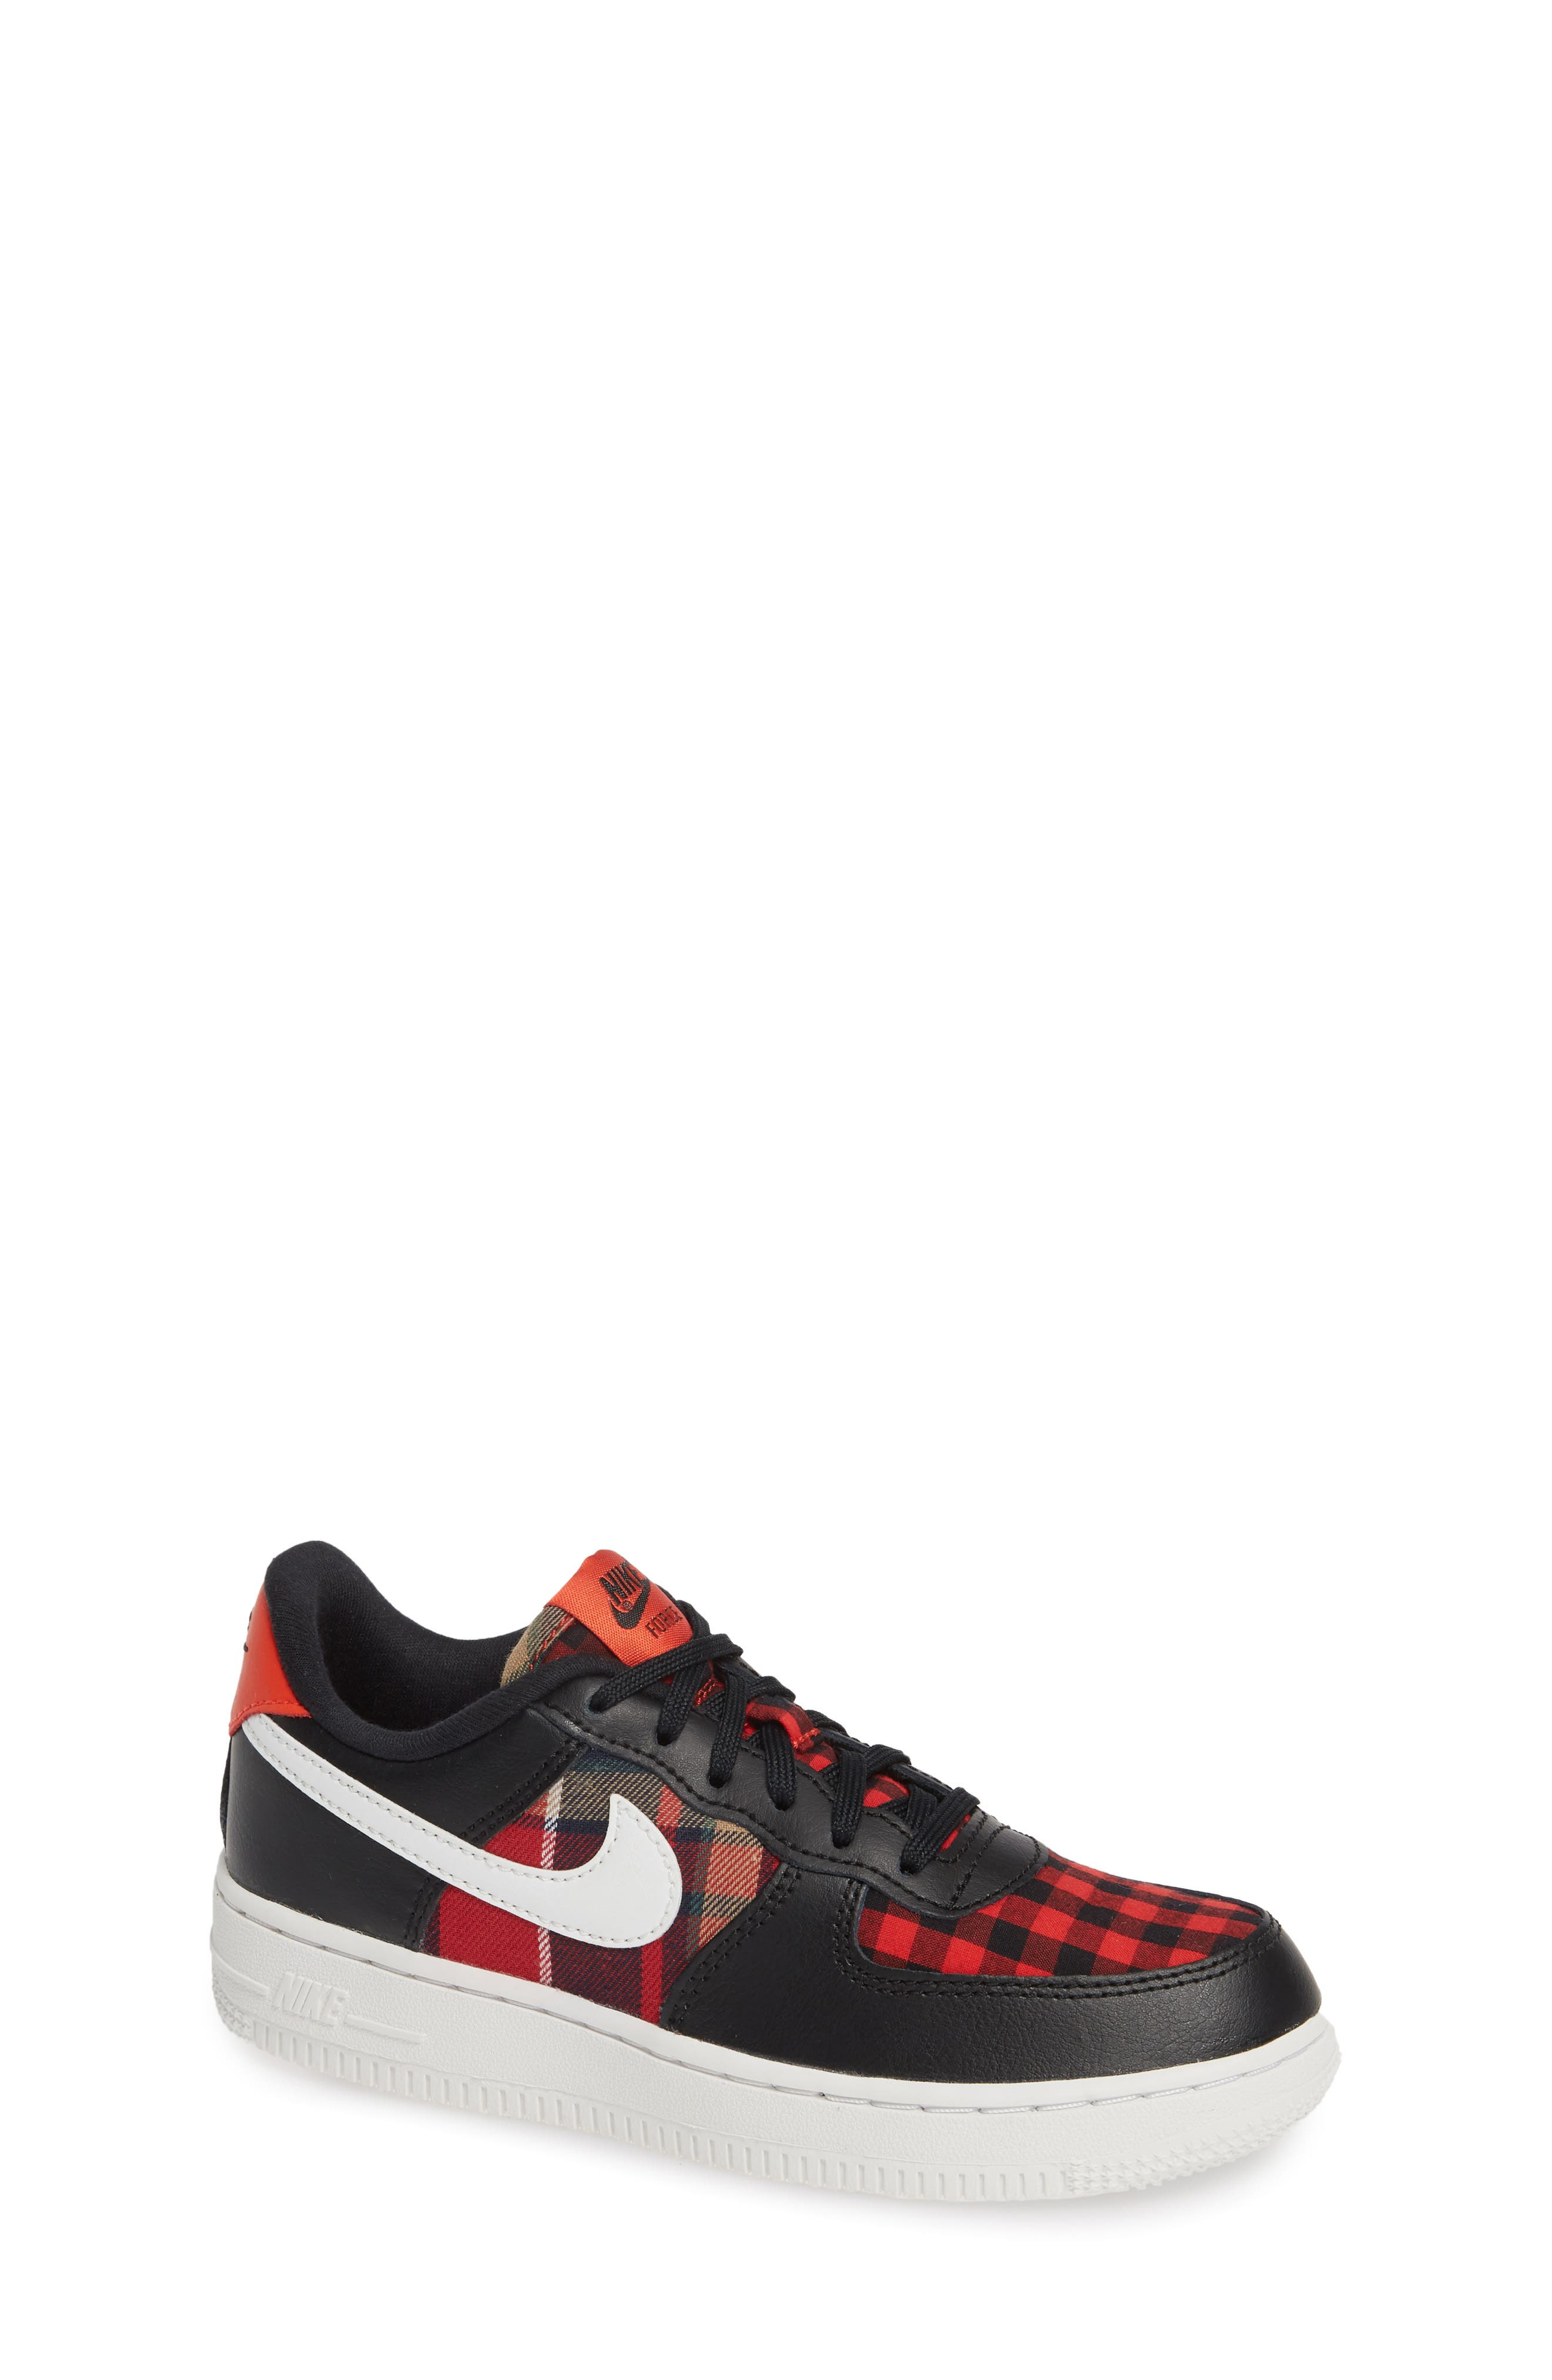 Air Force 1 LV8 Sneaker,                         Main,                         color, BLACK SUMMIT WHITE RED